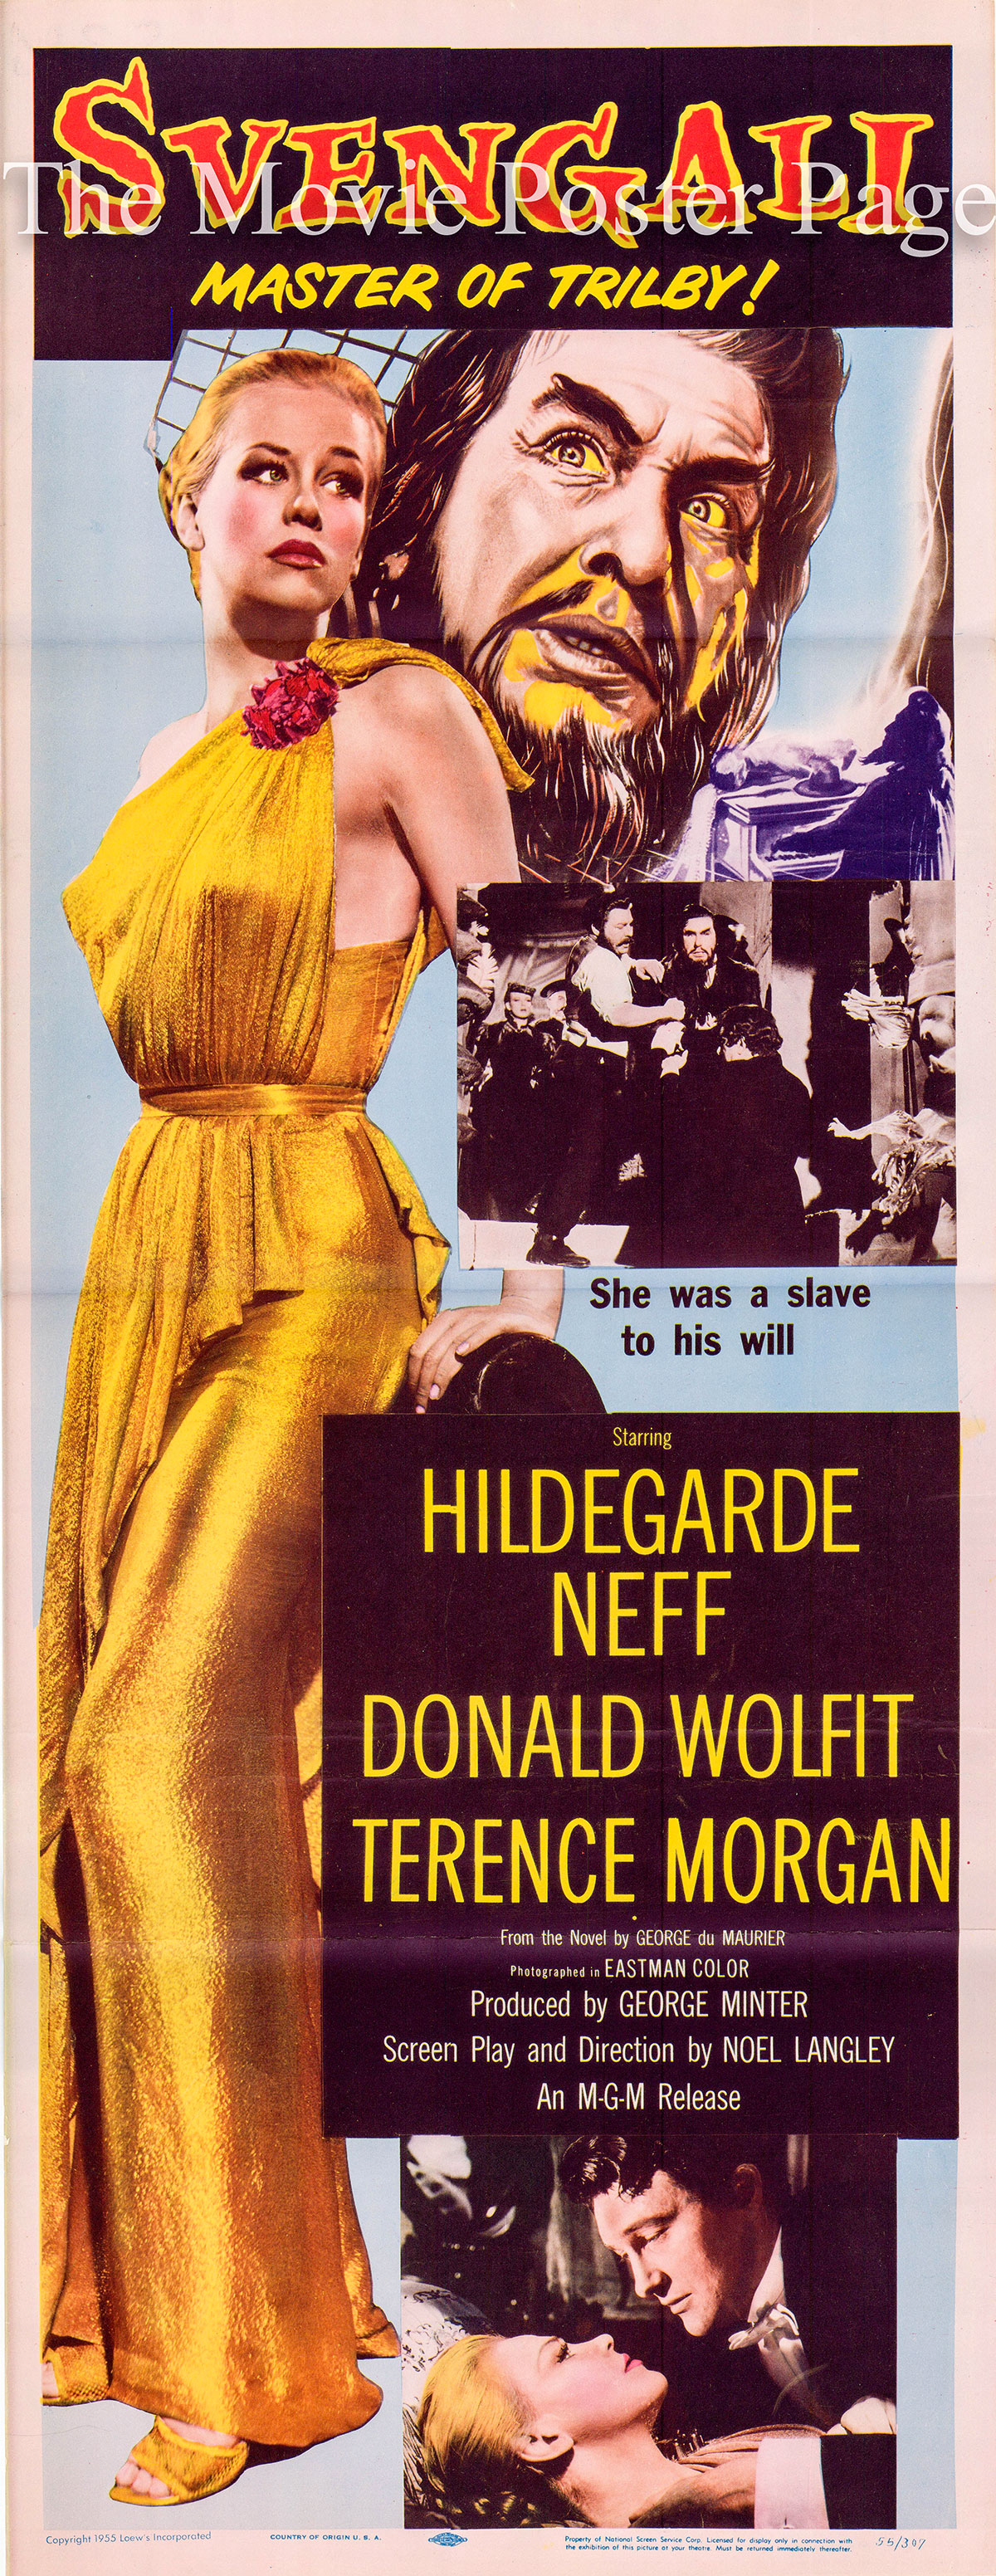 Pictured is a US insert promotional poster for the 1955 Noel Langley film Svengali starring Hildegarde Neff.